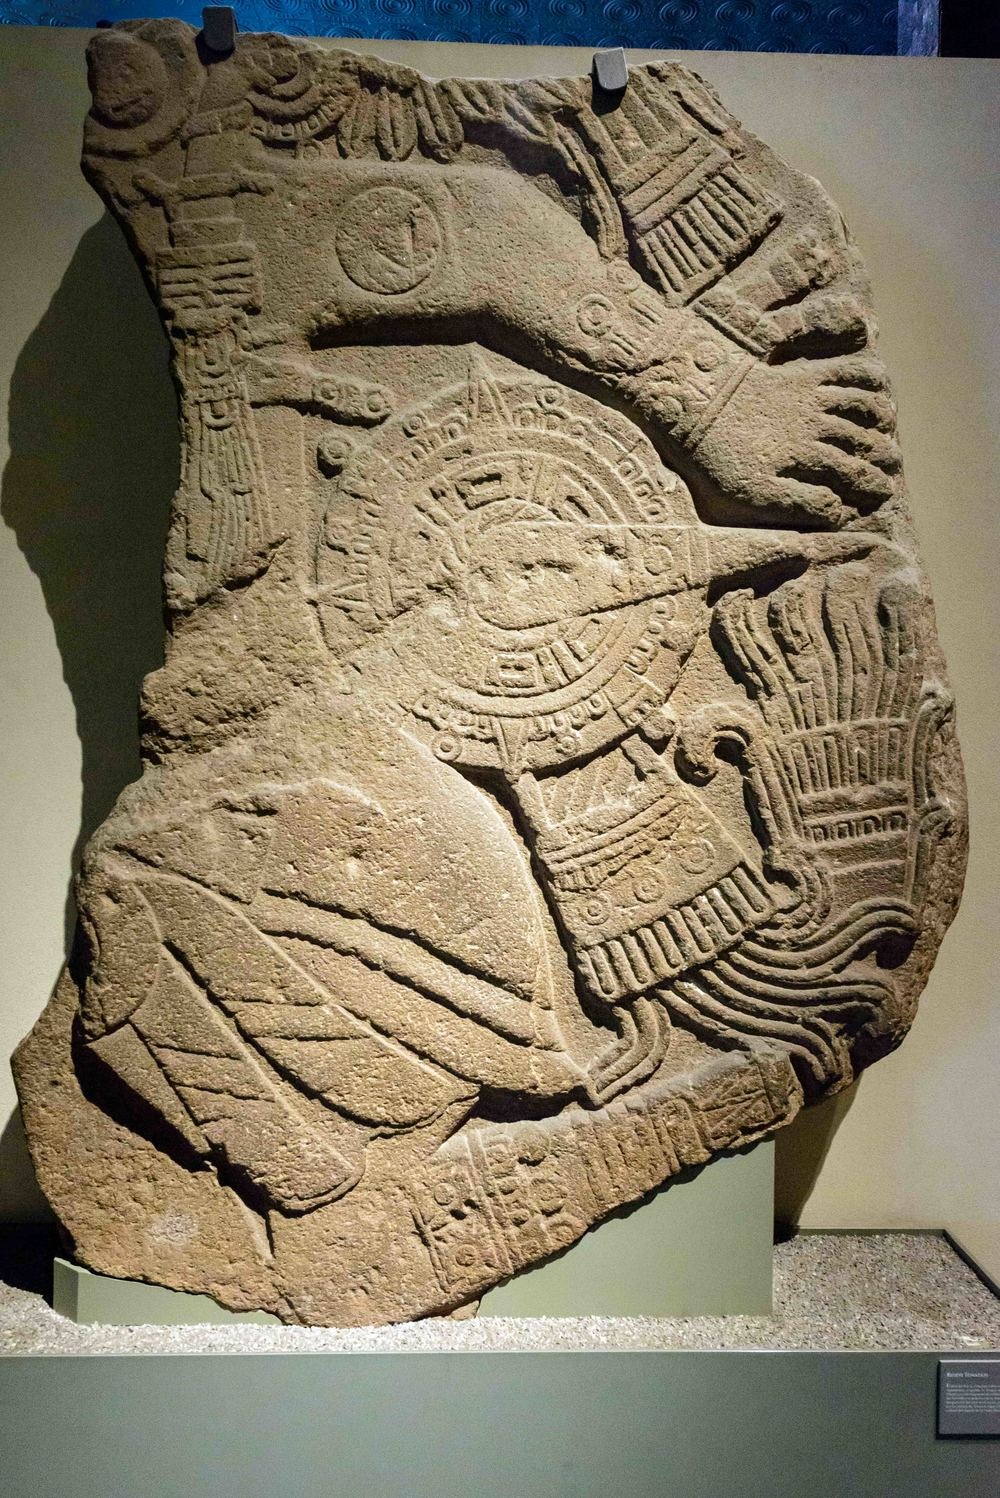 Relief of the death of the sun. The deeper meaning of fear, the end of the solar cycle, is expressed in this, unfortunately incomplete sculptural fragment, where you can see the sun, resembling a warrior who wears stellar sandals.